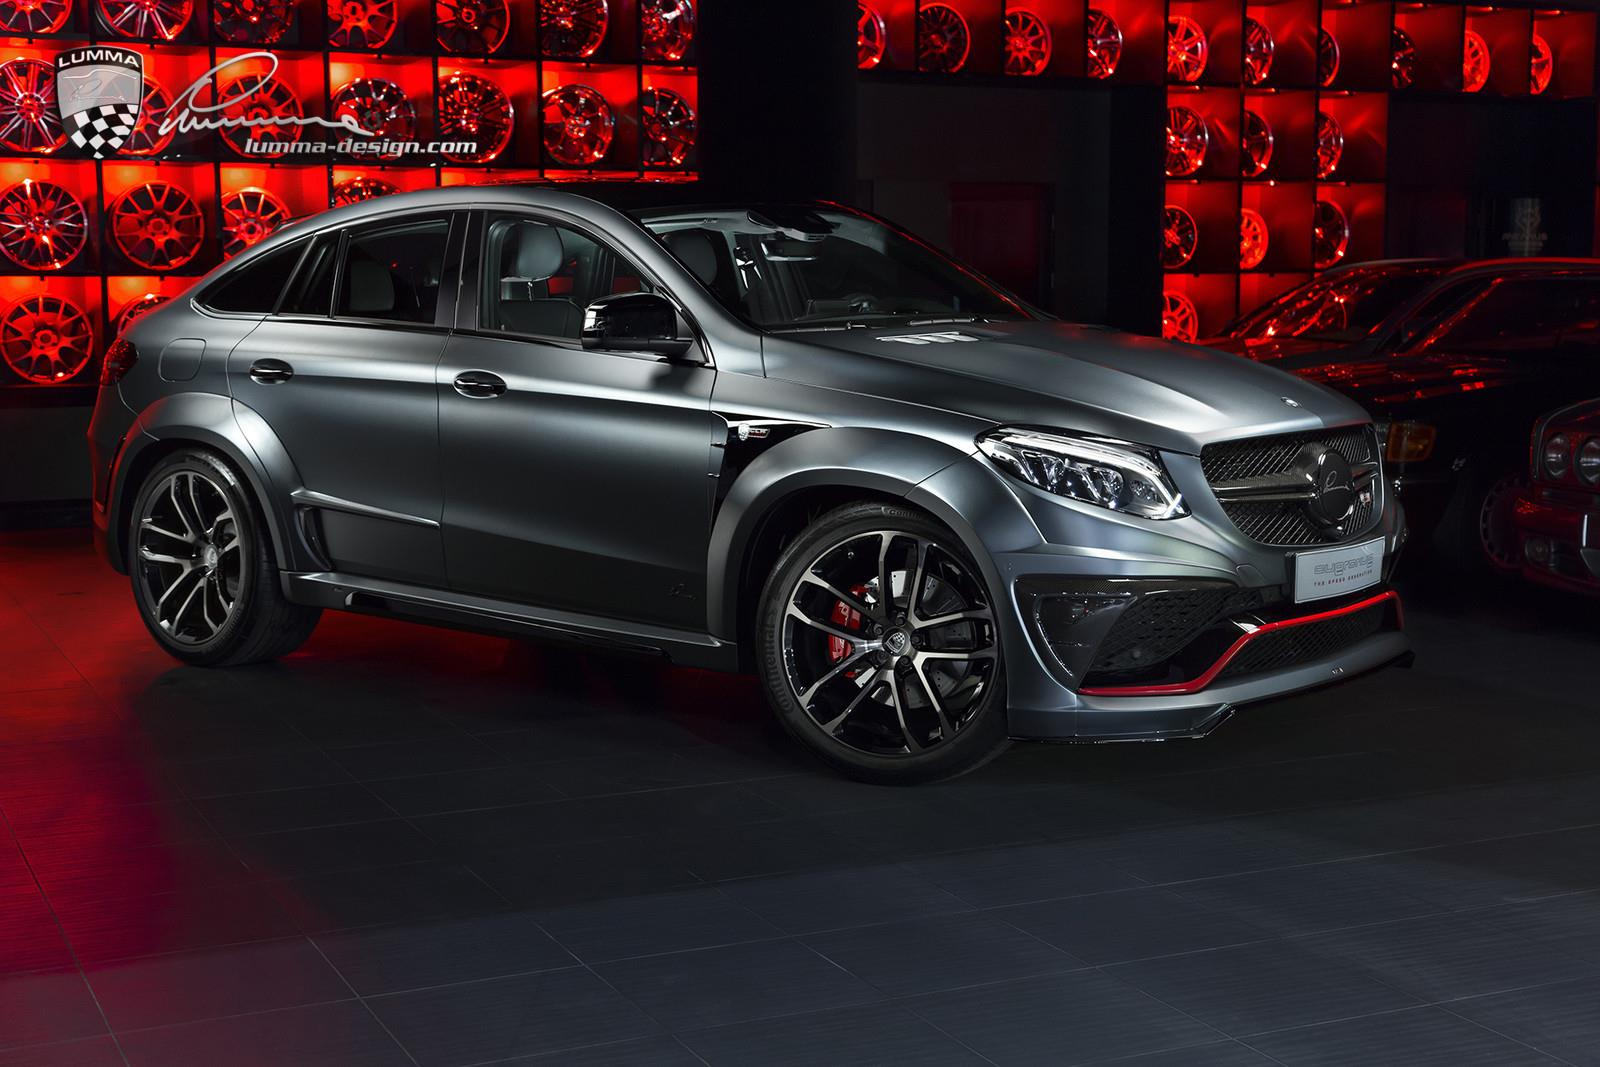 Mercedes-Benz GLE Coupe by Lumma Design (1)